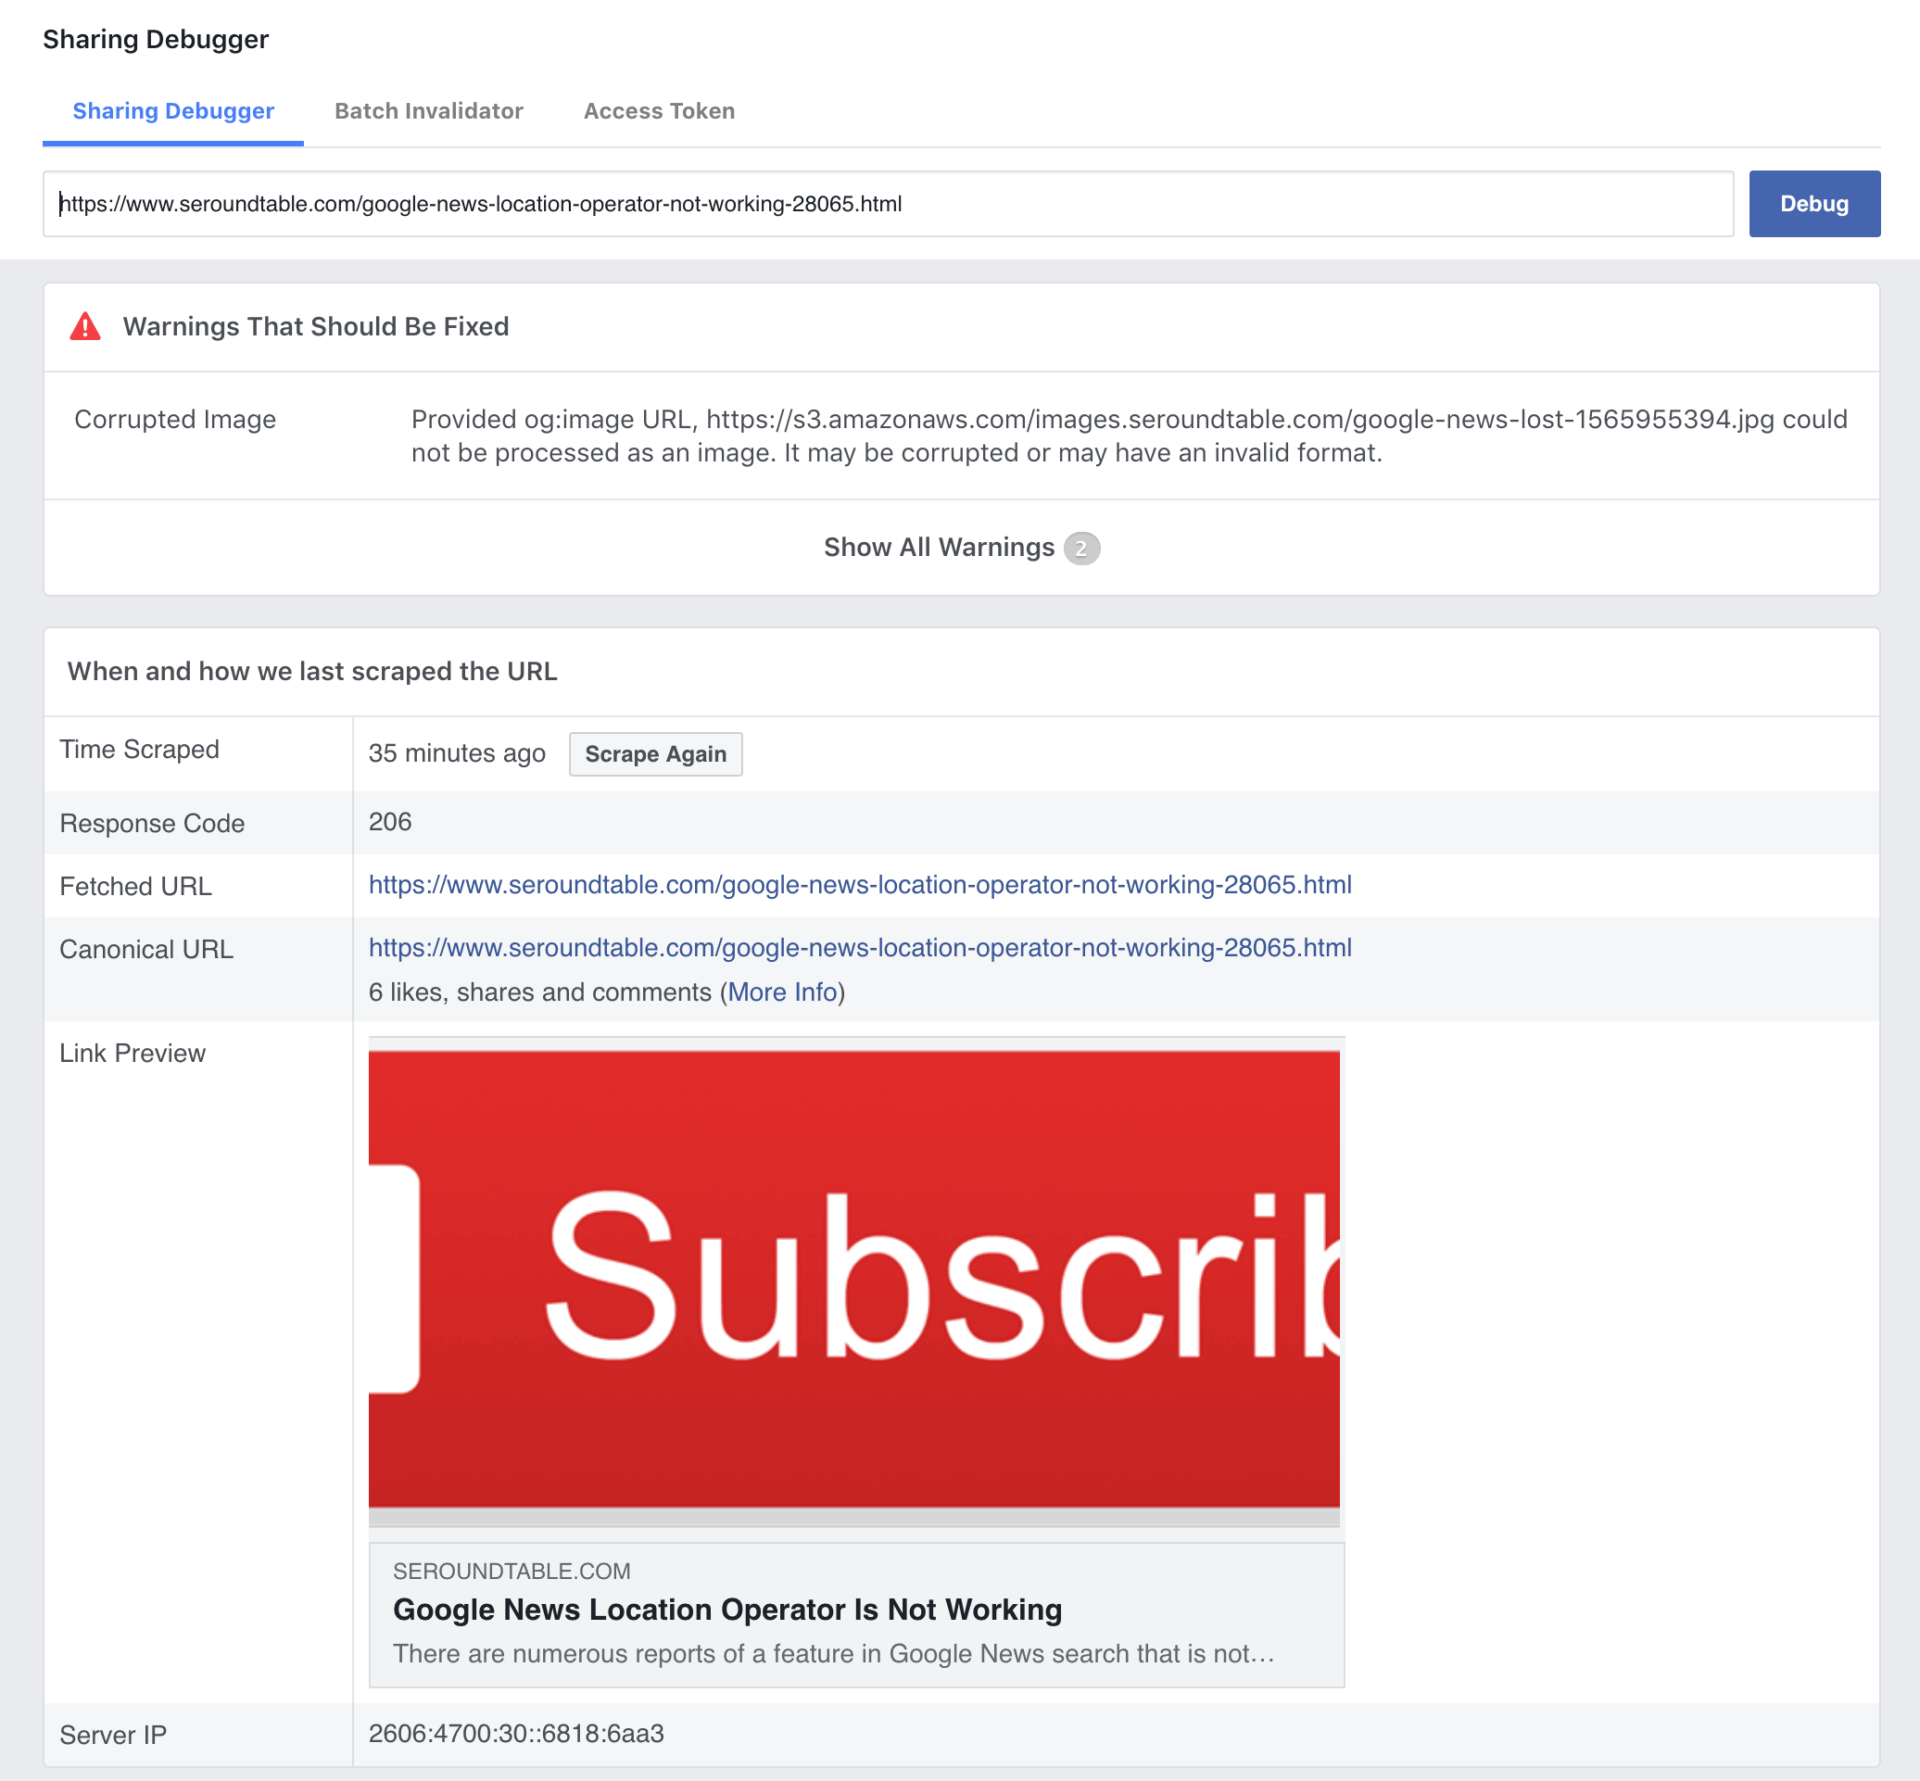 Does Facebook have a problem with HTTPS URLs in posts with images?